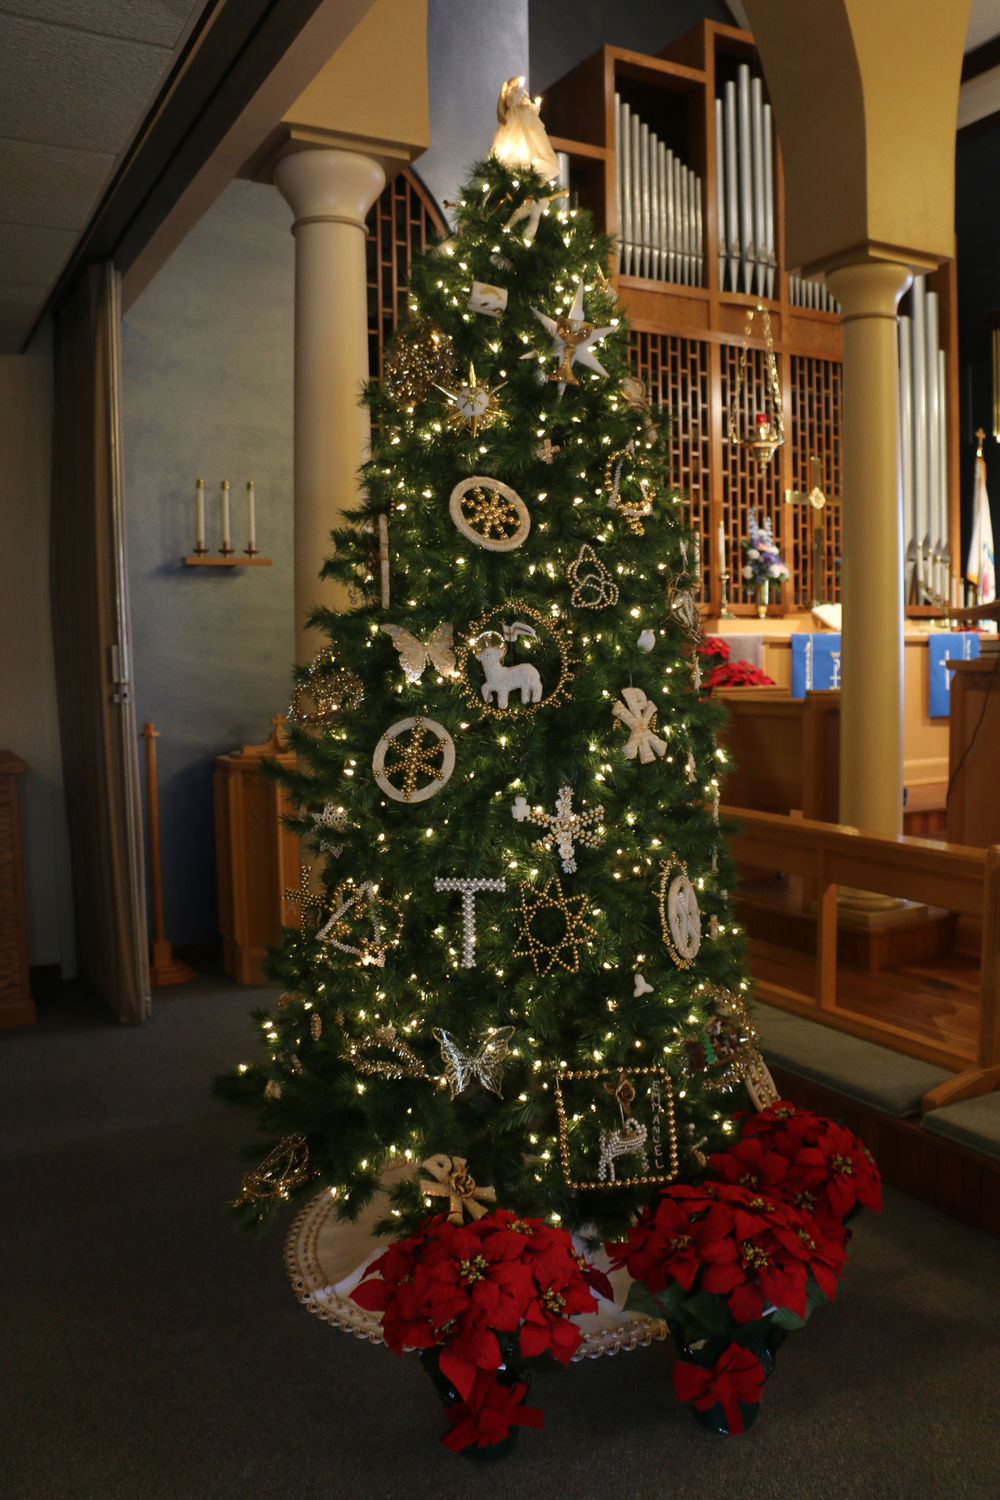 Chrismons display at local church represents the meaning ...